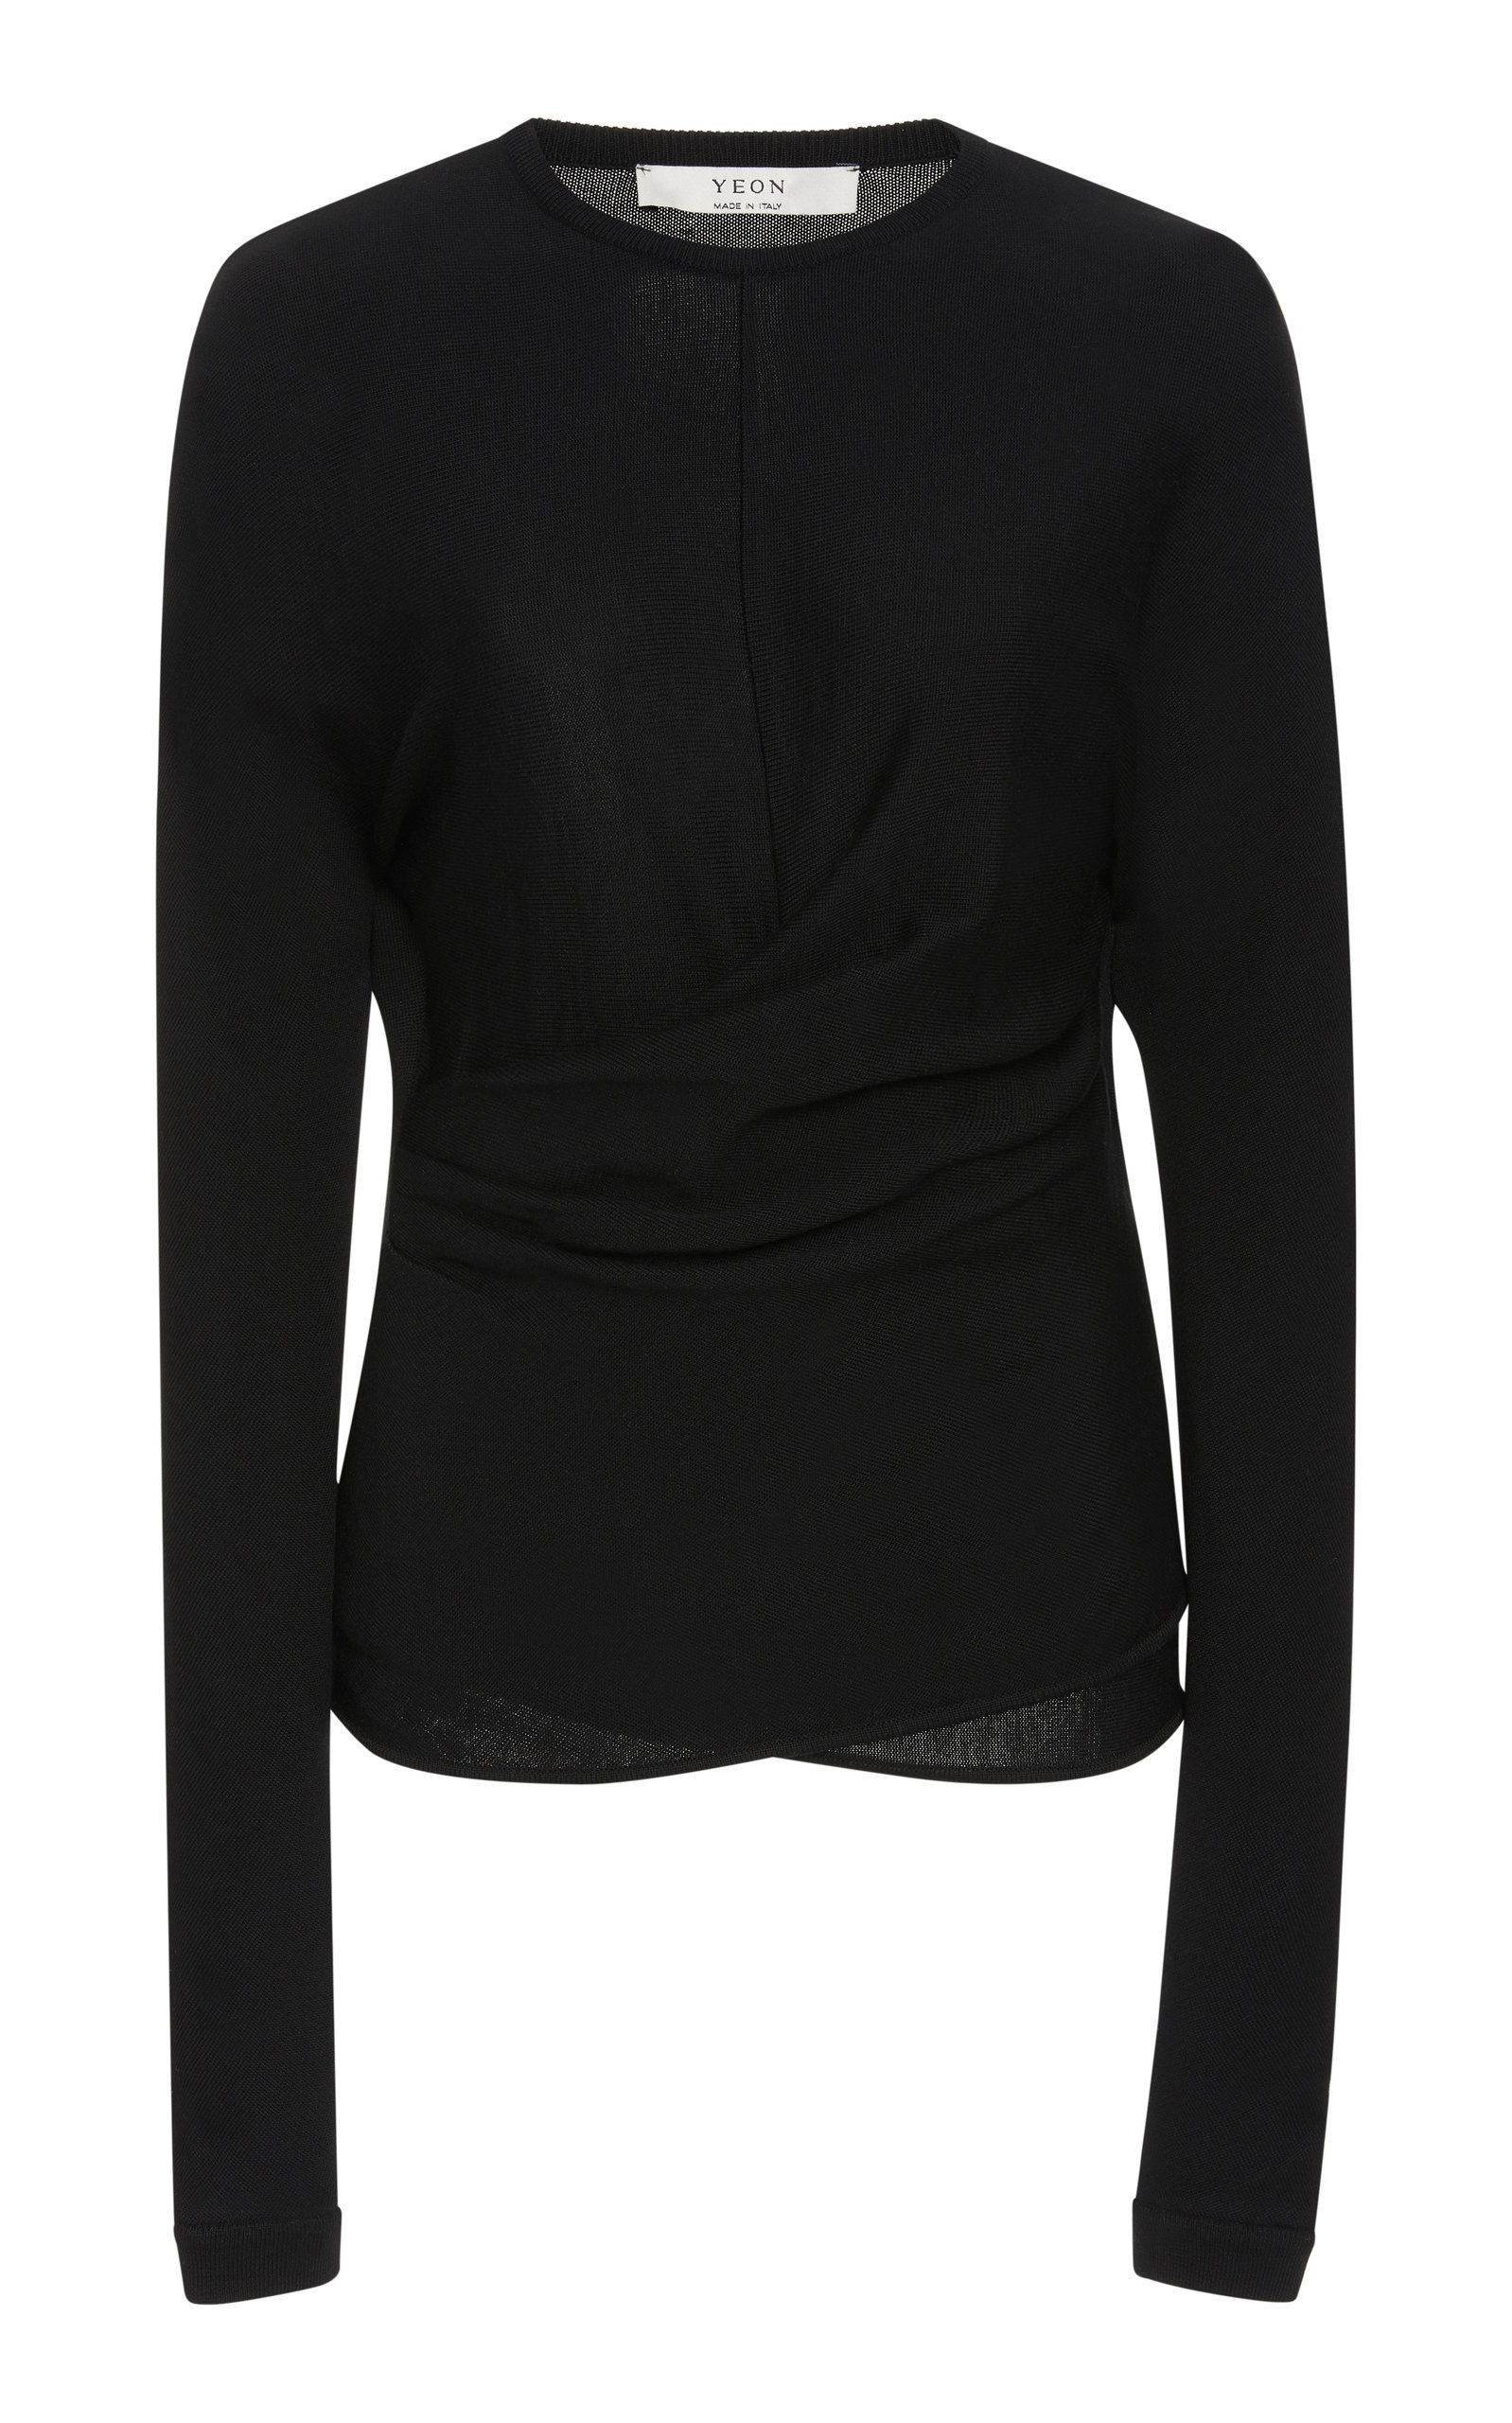 YEON Atlanta Draped Jersey Top in Black